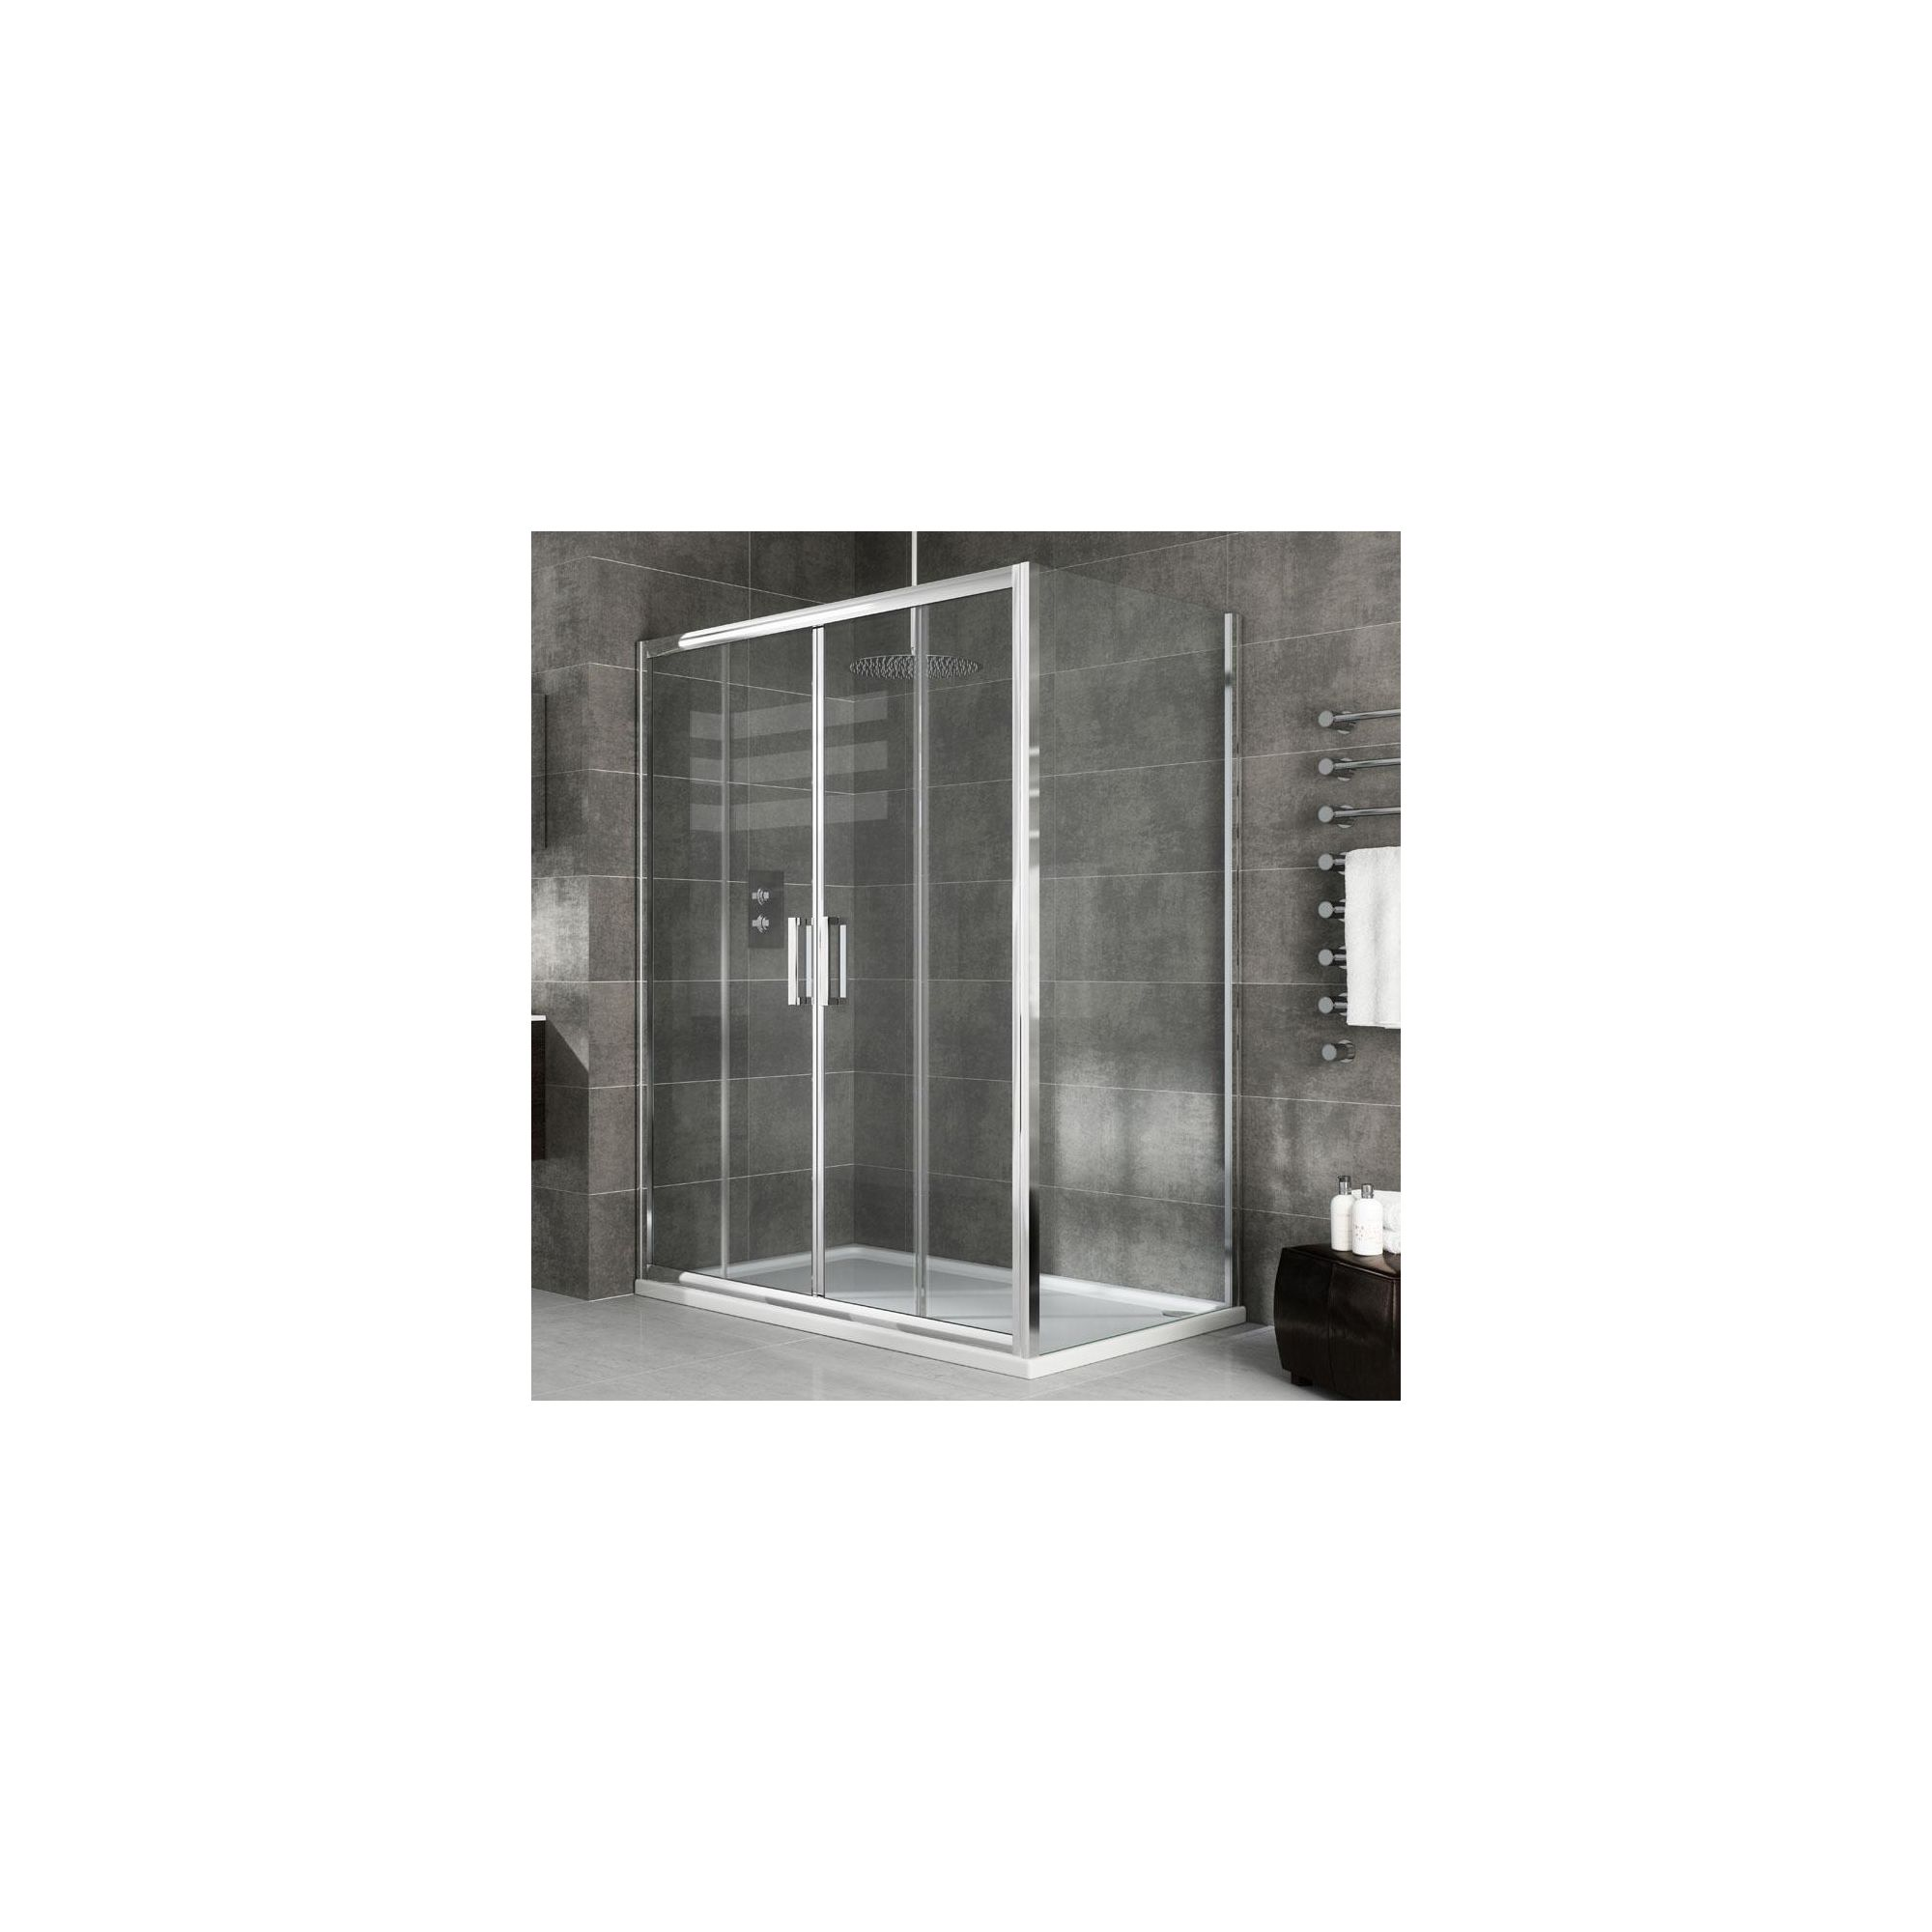 Elemis Eternity Two-Panel Jumbo Sliding Shower Door, 1100mm Wide, 8mm Glass at Tesco Direct